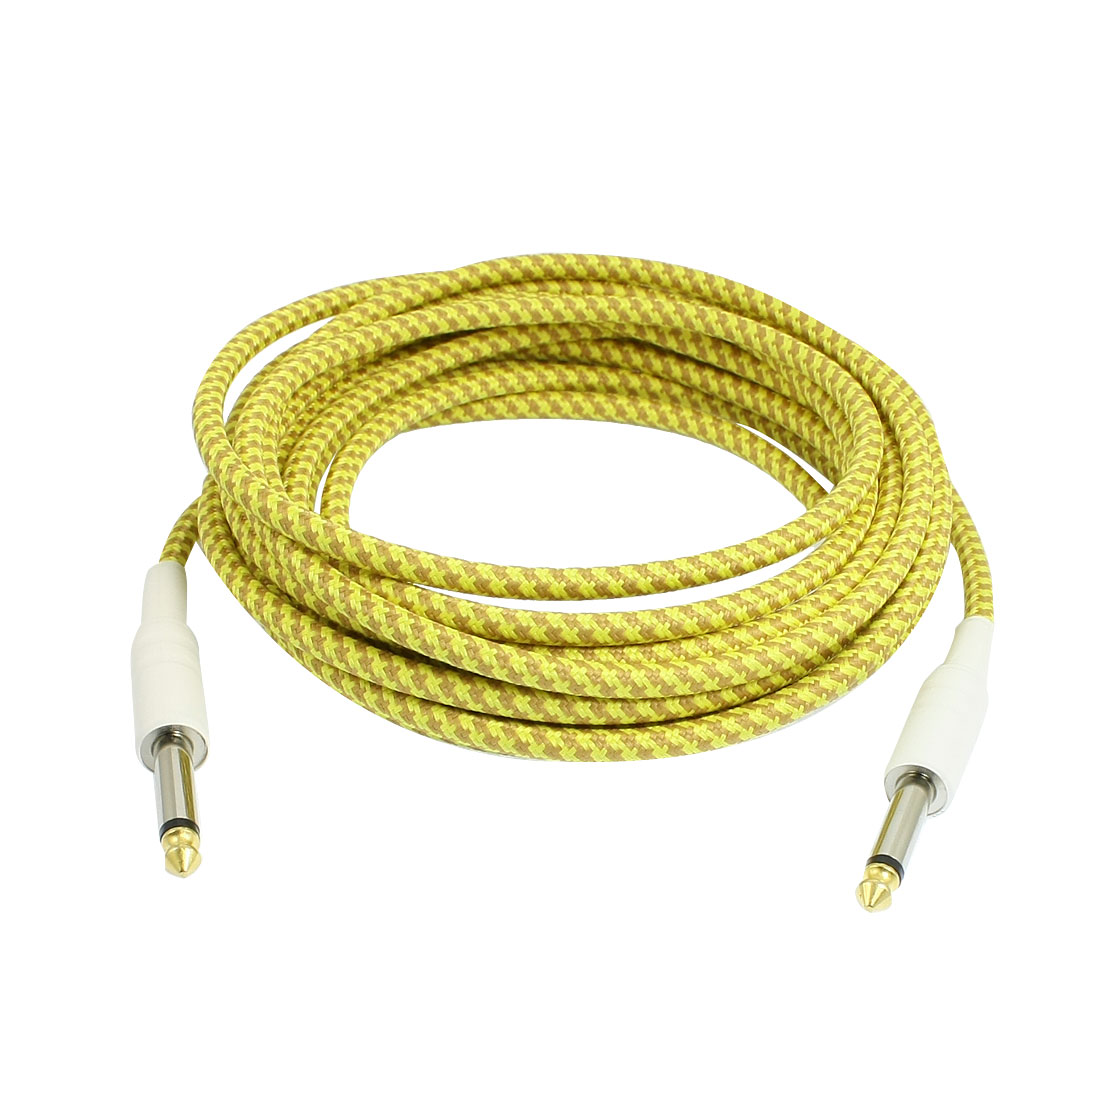 Straight Jack Braided Electric Guitar Cable Replacement 5M Length Yellow Khaki